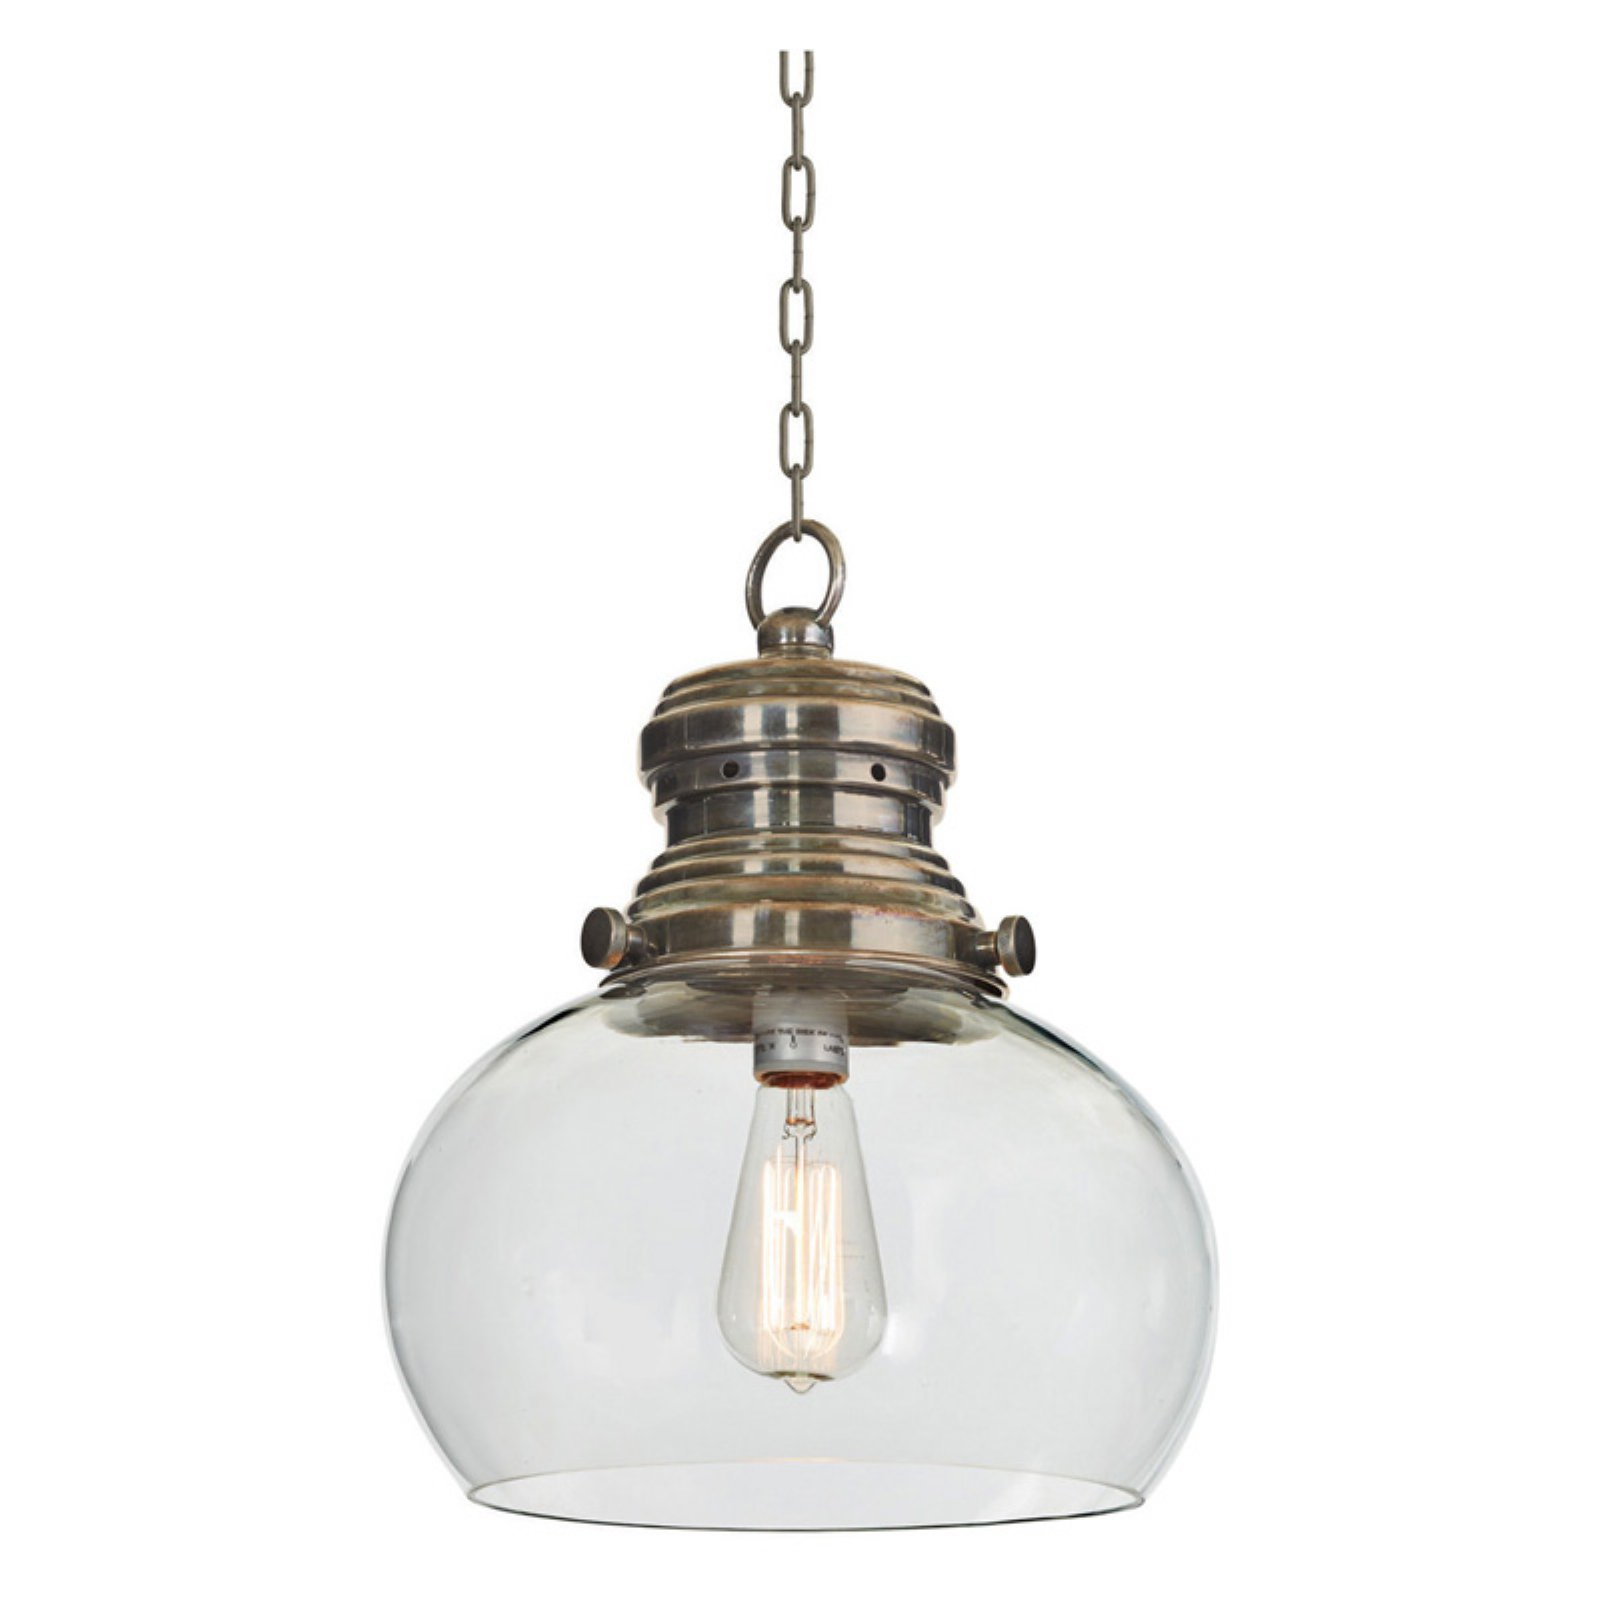 Go Home Rotundo Gl Hanging Light Products In 2019